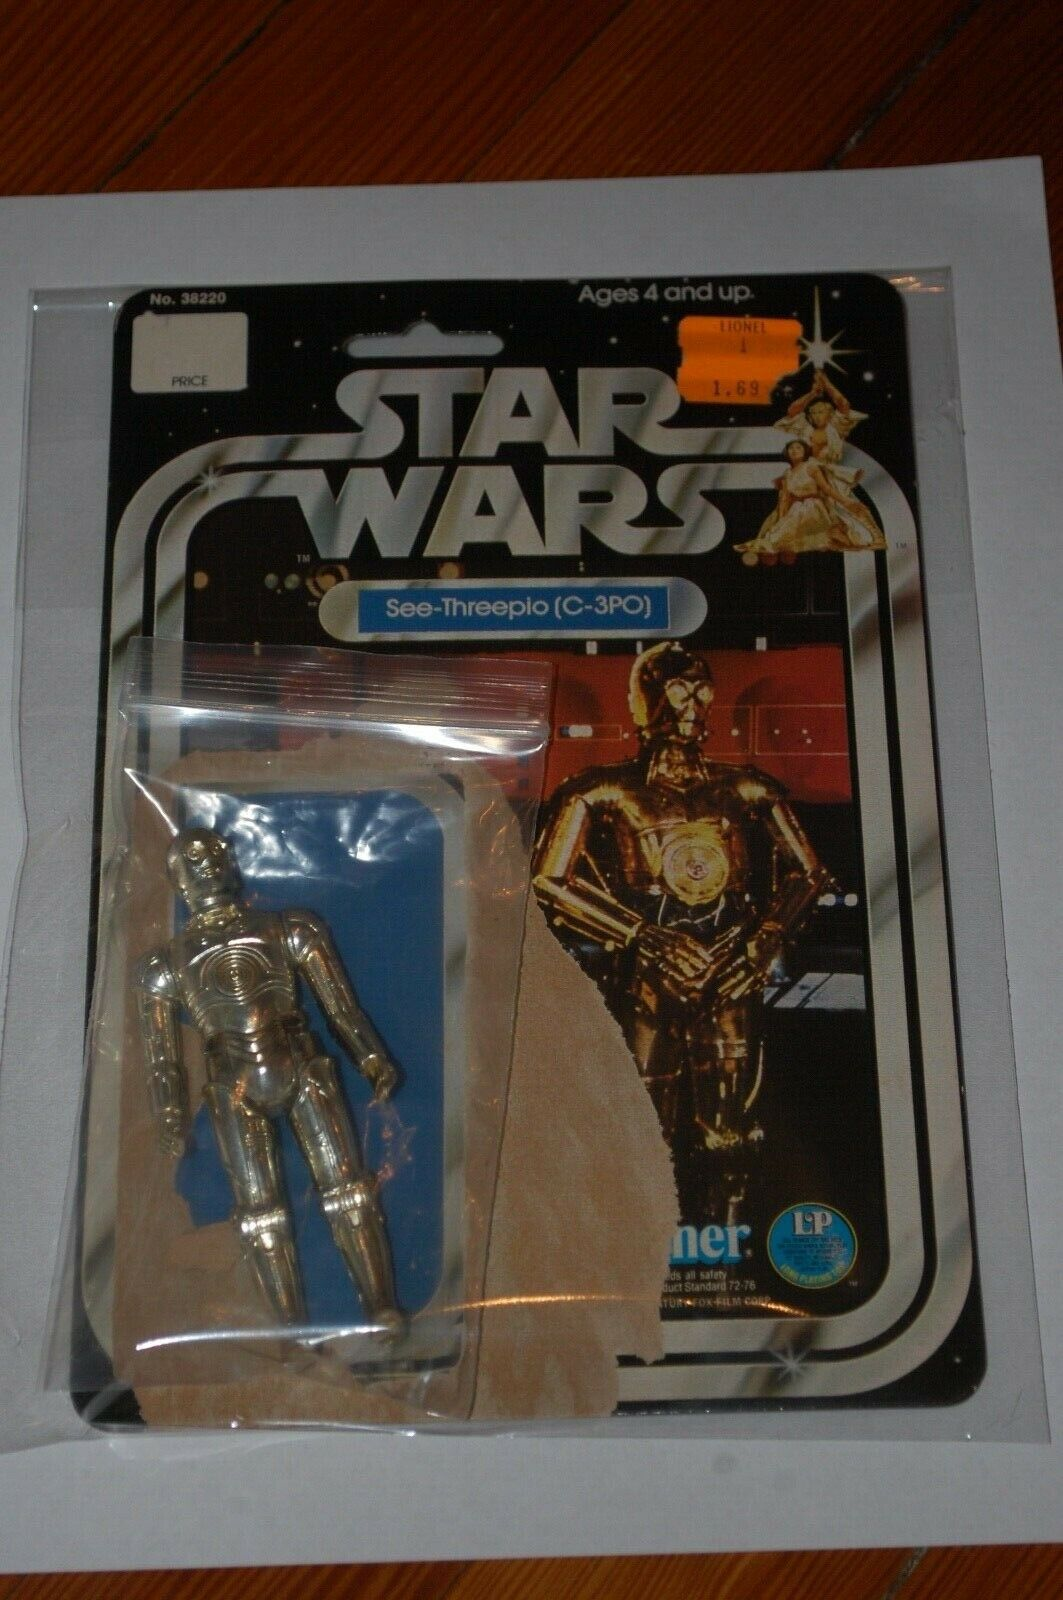 C-3PO-Loose-Star Wars-A New Hope-Vintage-With 12 Back Card